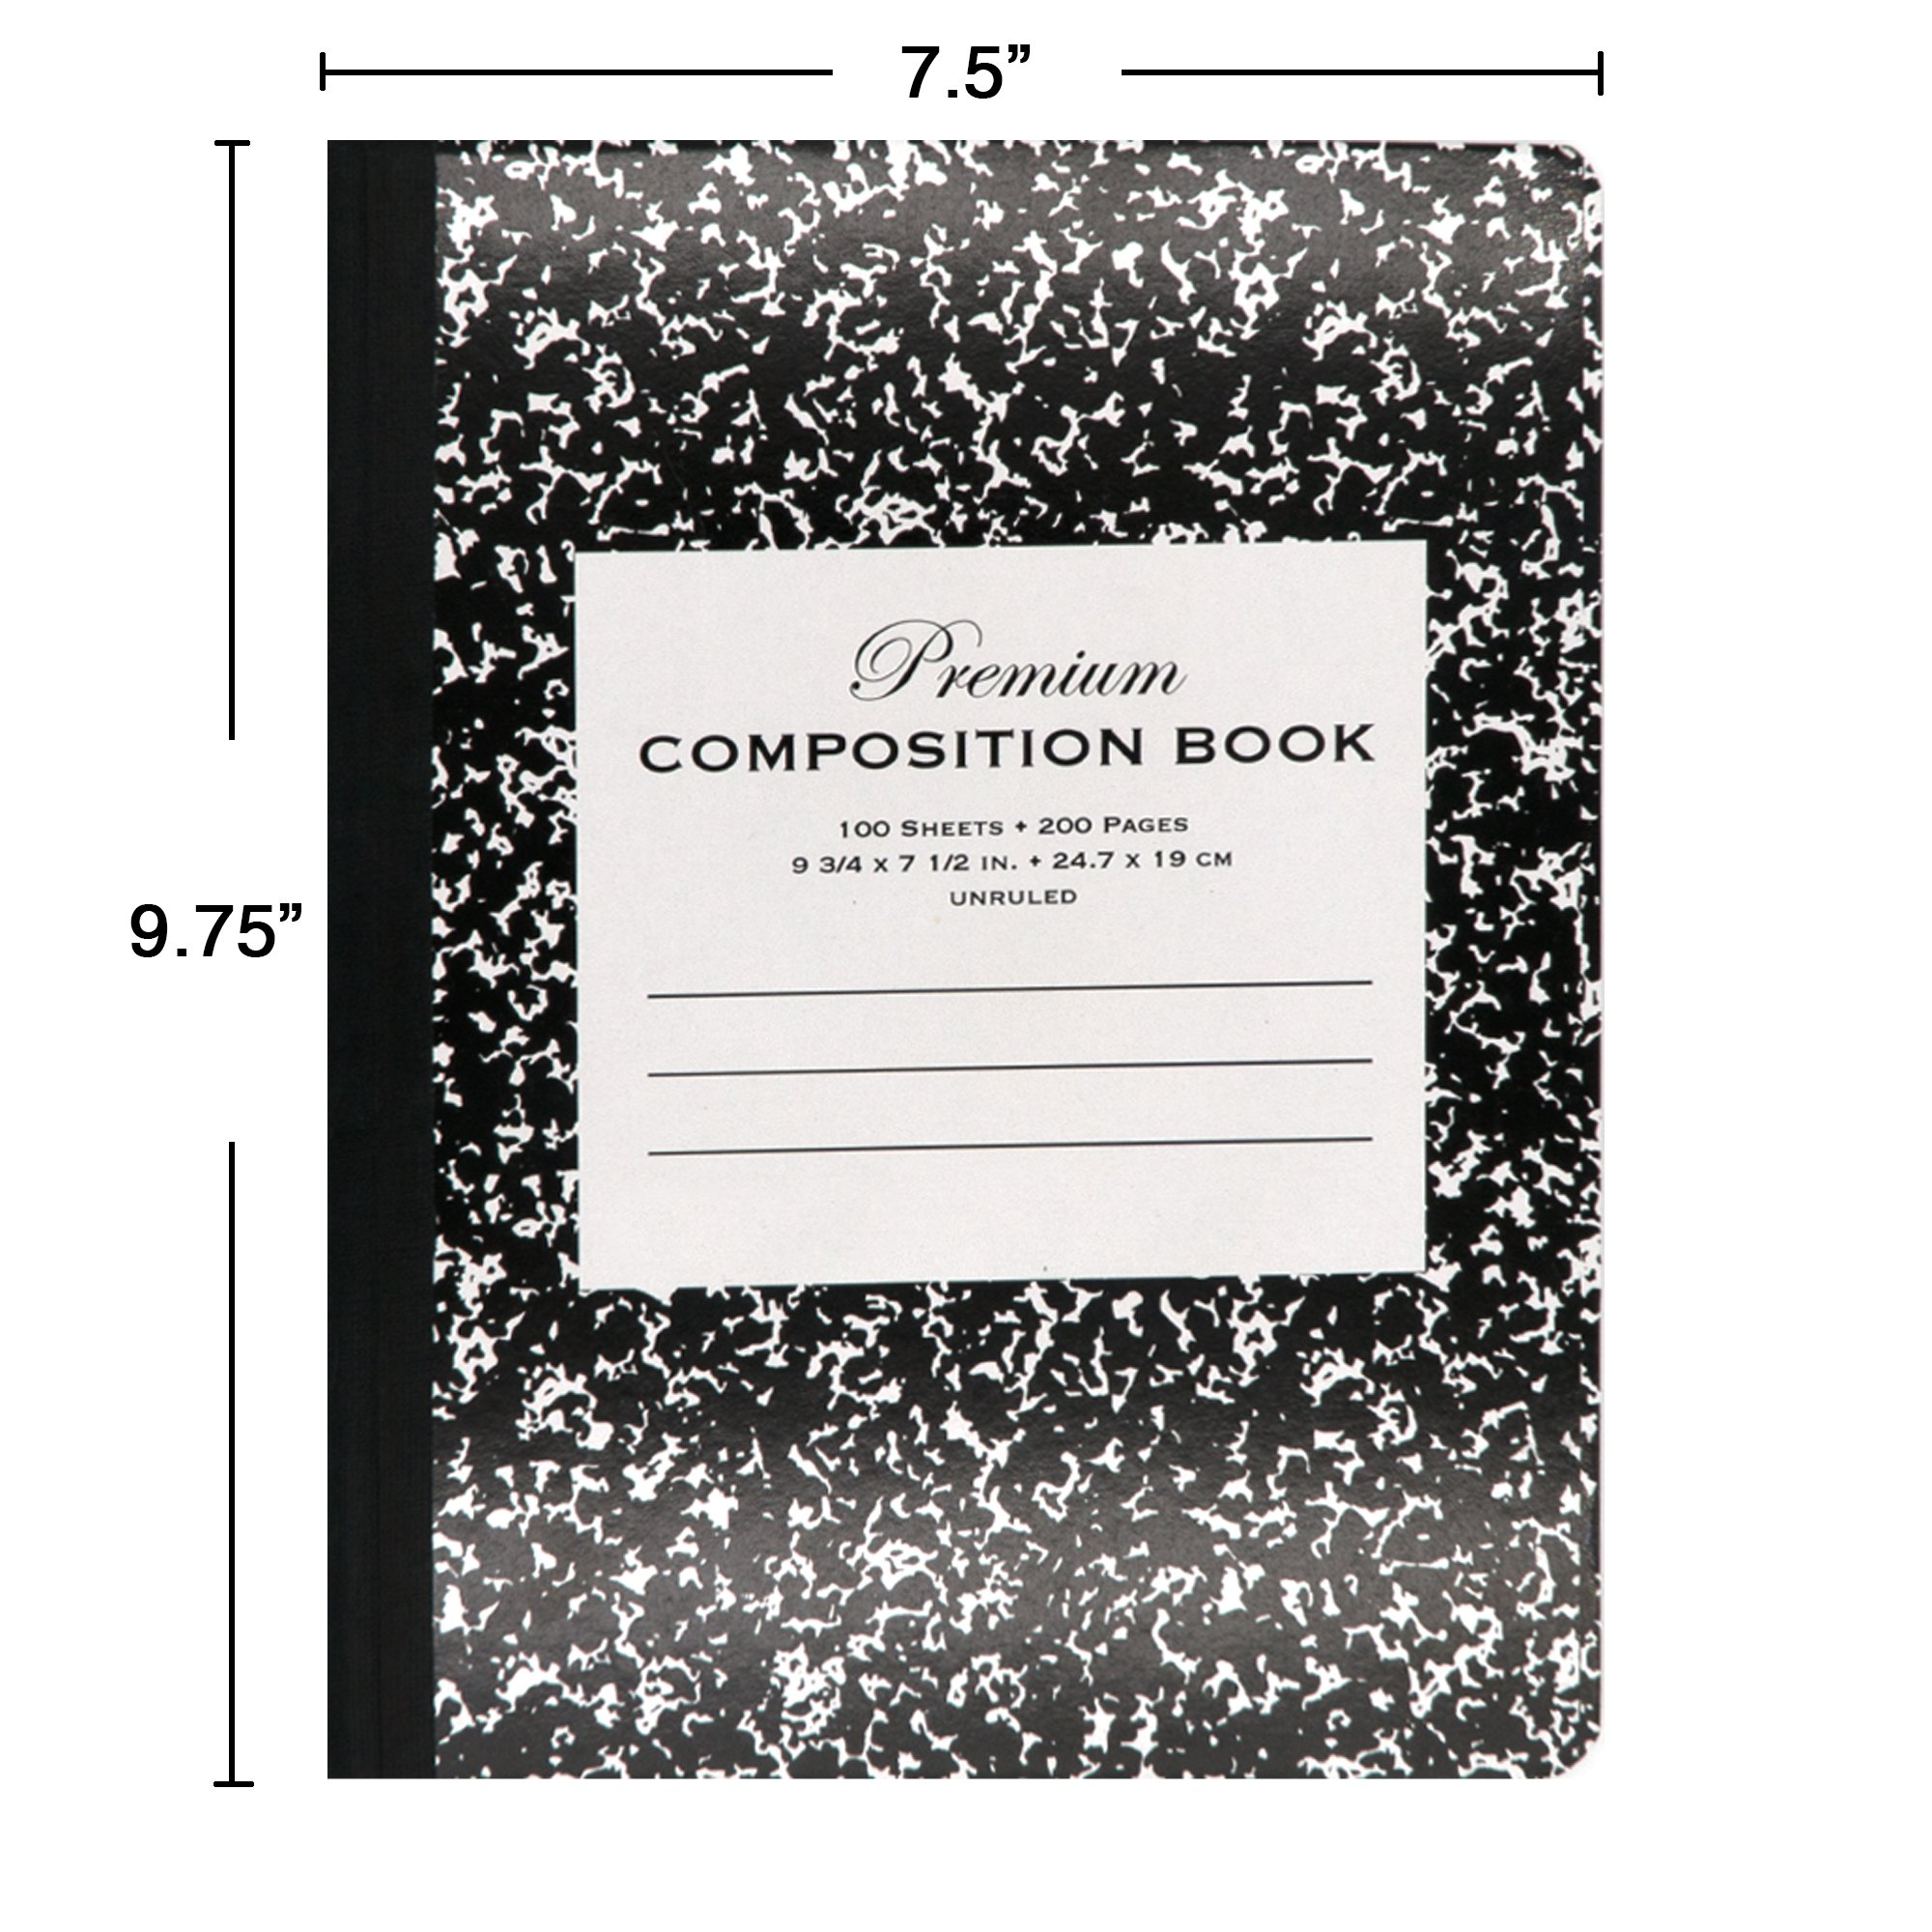 Emraw Black Marble Composition Book Unruled Paper 100 Sheet Office Dairy Drawing Note Books Journals Meeting Notebook Hard Covers Pack Of 4 Writing Book For school by Emraw (Image #2)